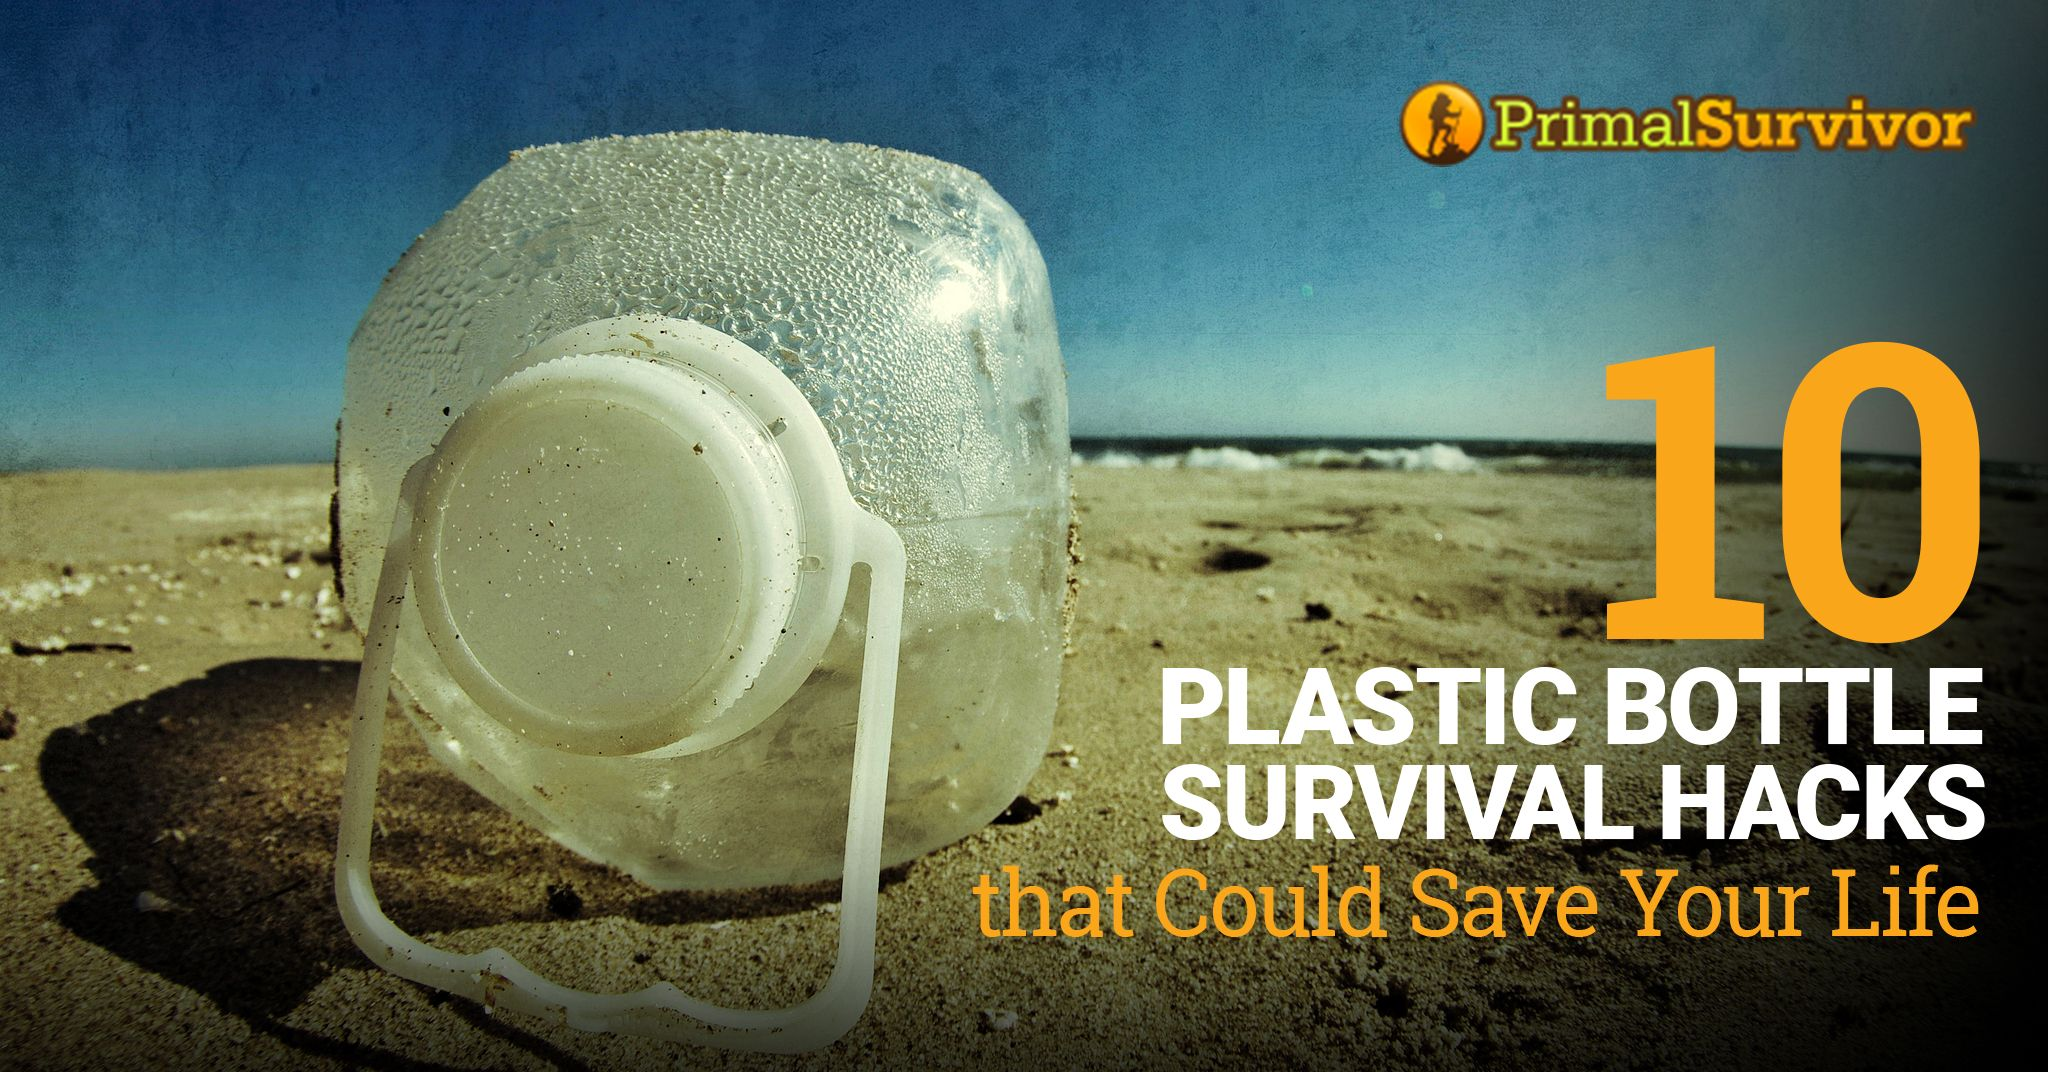 10 Plastic Bottle Survival Hacks that Could Save Your Life